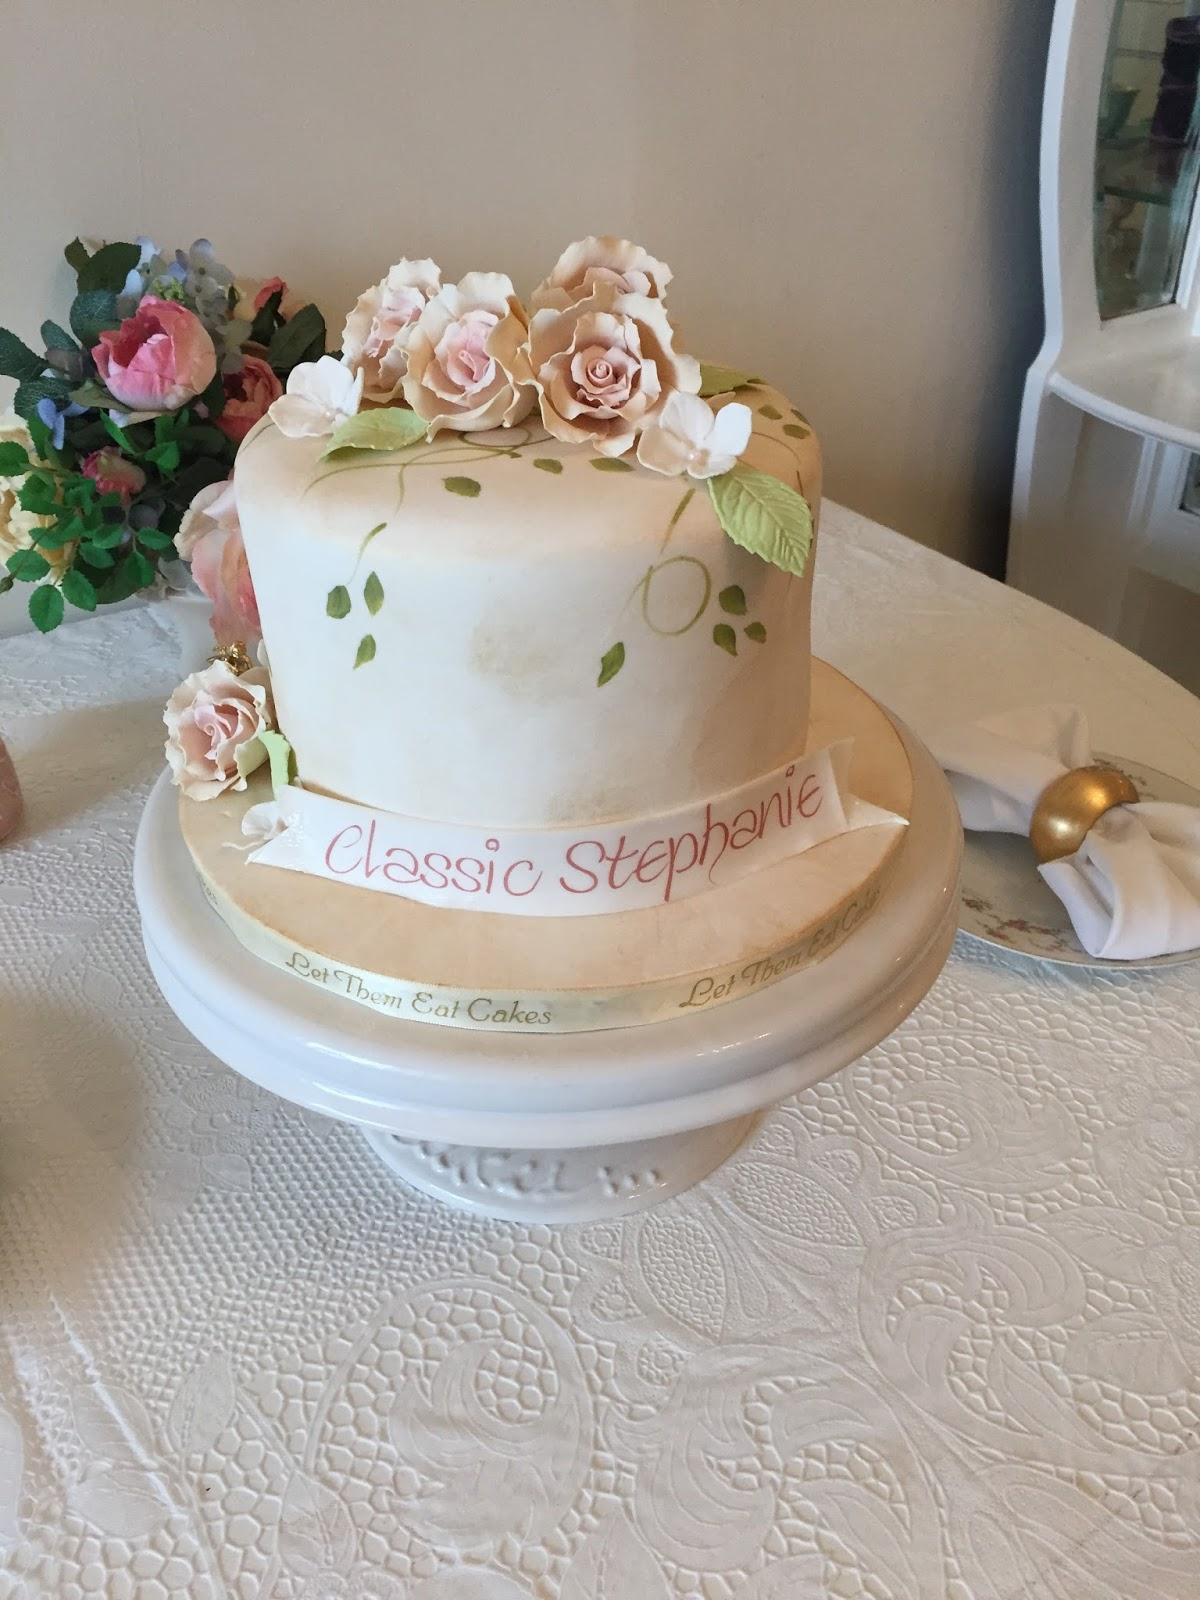 Stephanie The Birthday Girl Loves Shabby Chic Lots Of Pink And Girly Things Course Flowers We Designed This Pretty Cake With A Garden Feel